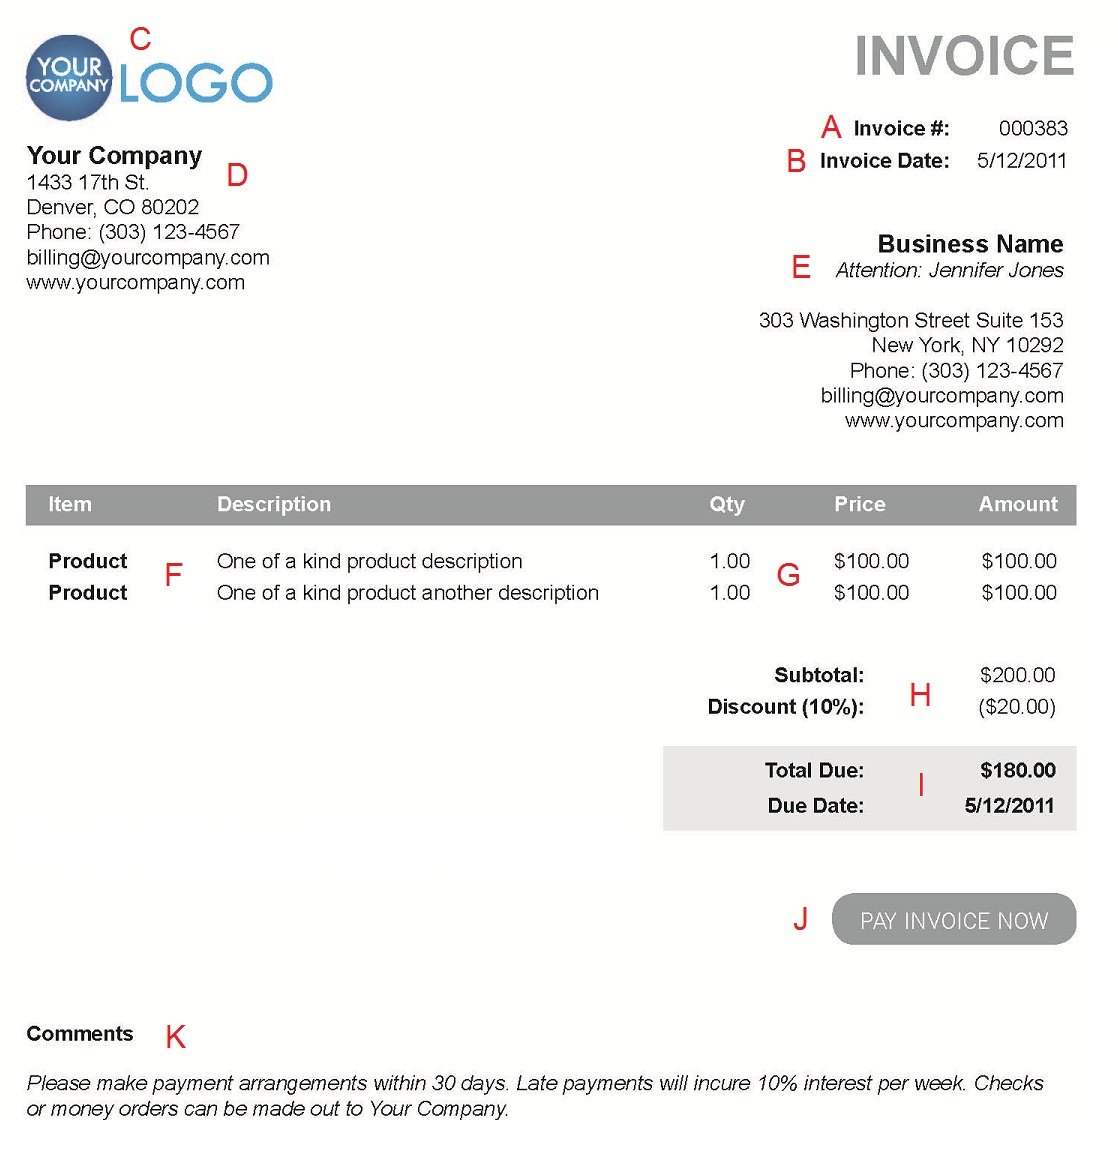 Coachoutletonlineplusus  Marvelous The  Different Sections Of An Electronic Payment Invoice With Interesting A  With Amusing Payment Due Upon Receipt Of Invoice Also How Much Is Invoice Below Msrp In Addition Apple Invoice Template And Invoice T As Well As Car Dealer Invoice Prices Additionally Msrp Invoice From Paysimplecom With Coachoutletonlineplusus  Interesting The  Different Sections Of An Electronic Payment Invoice With Amusing A  And Marvelous Payment Due Upon Receipt Of Invoice Also How Much Is Invoice Below Msrp In Addition Apple Invoice Template From Paysimplecom